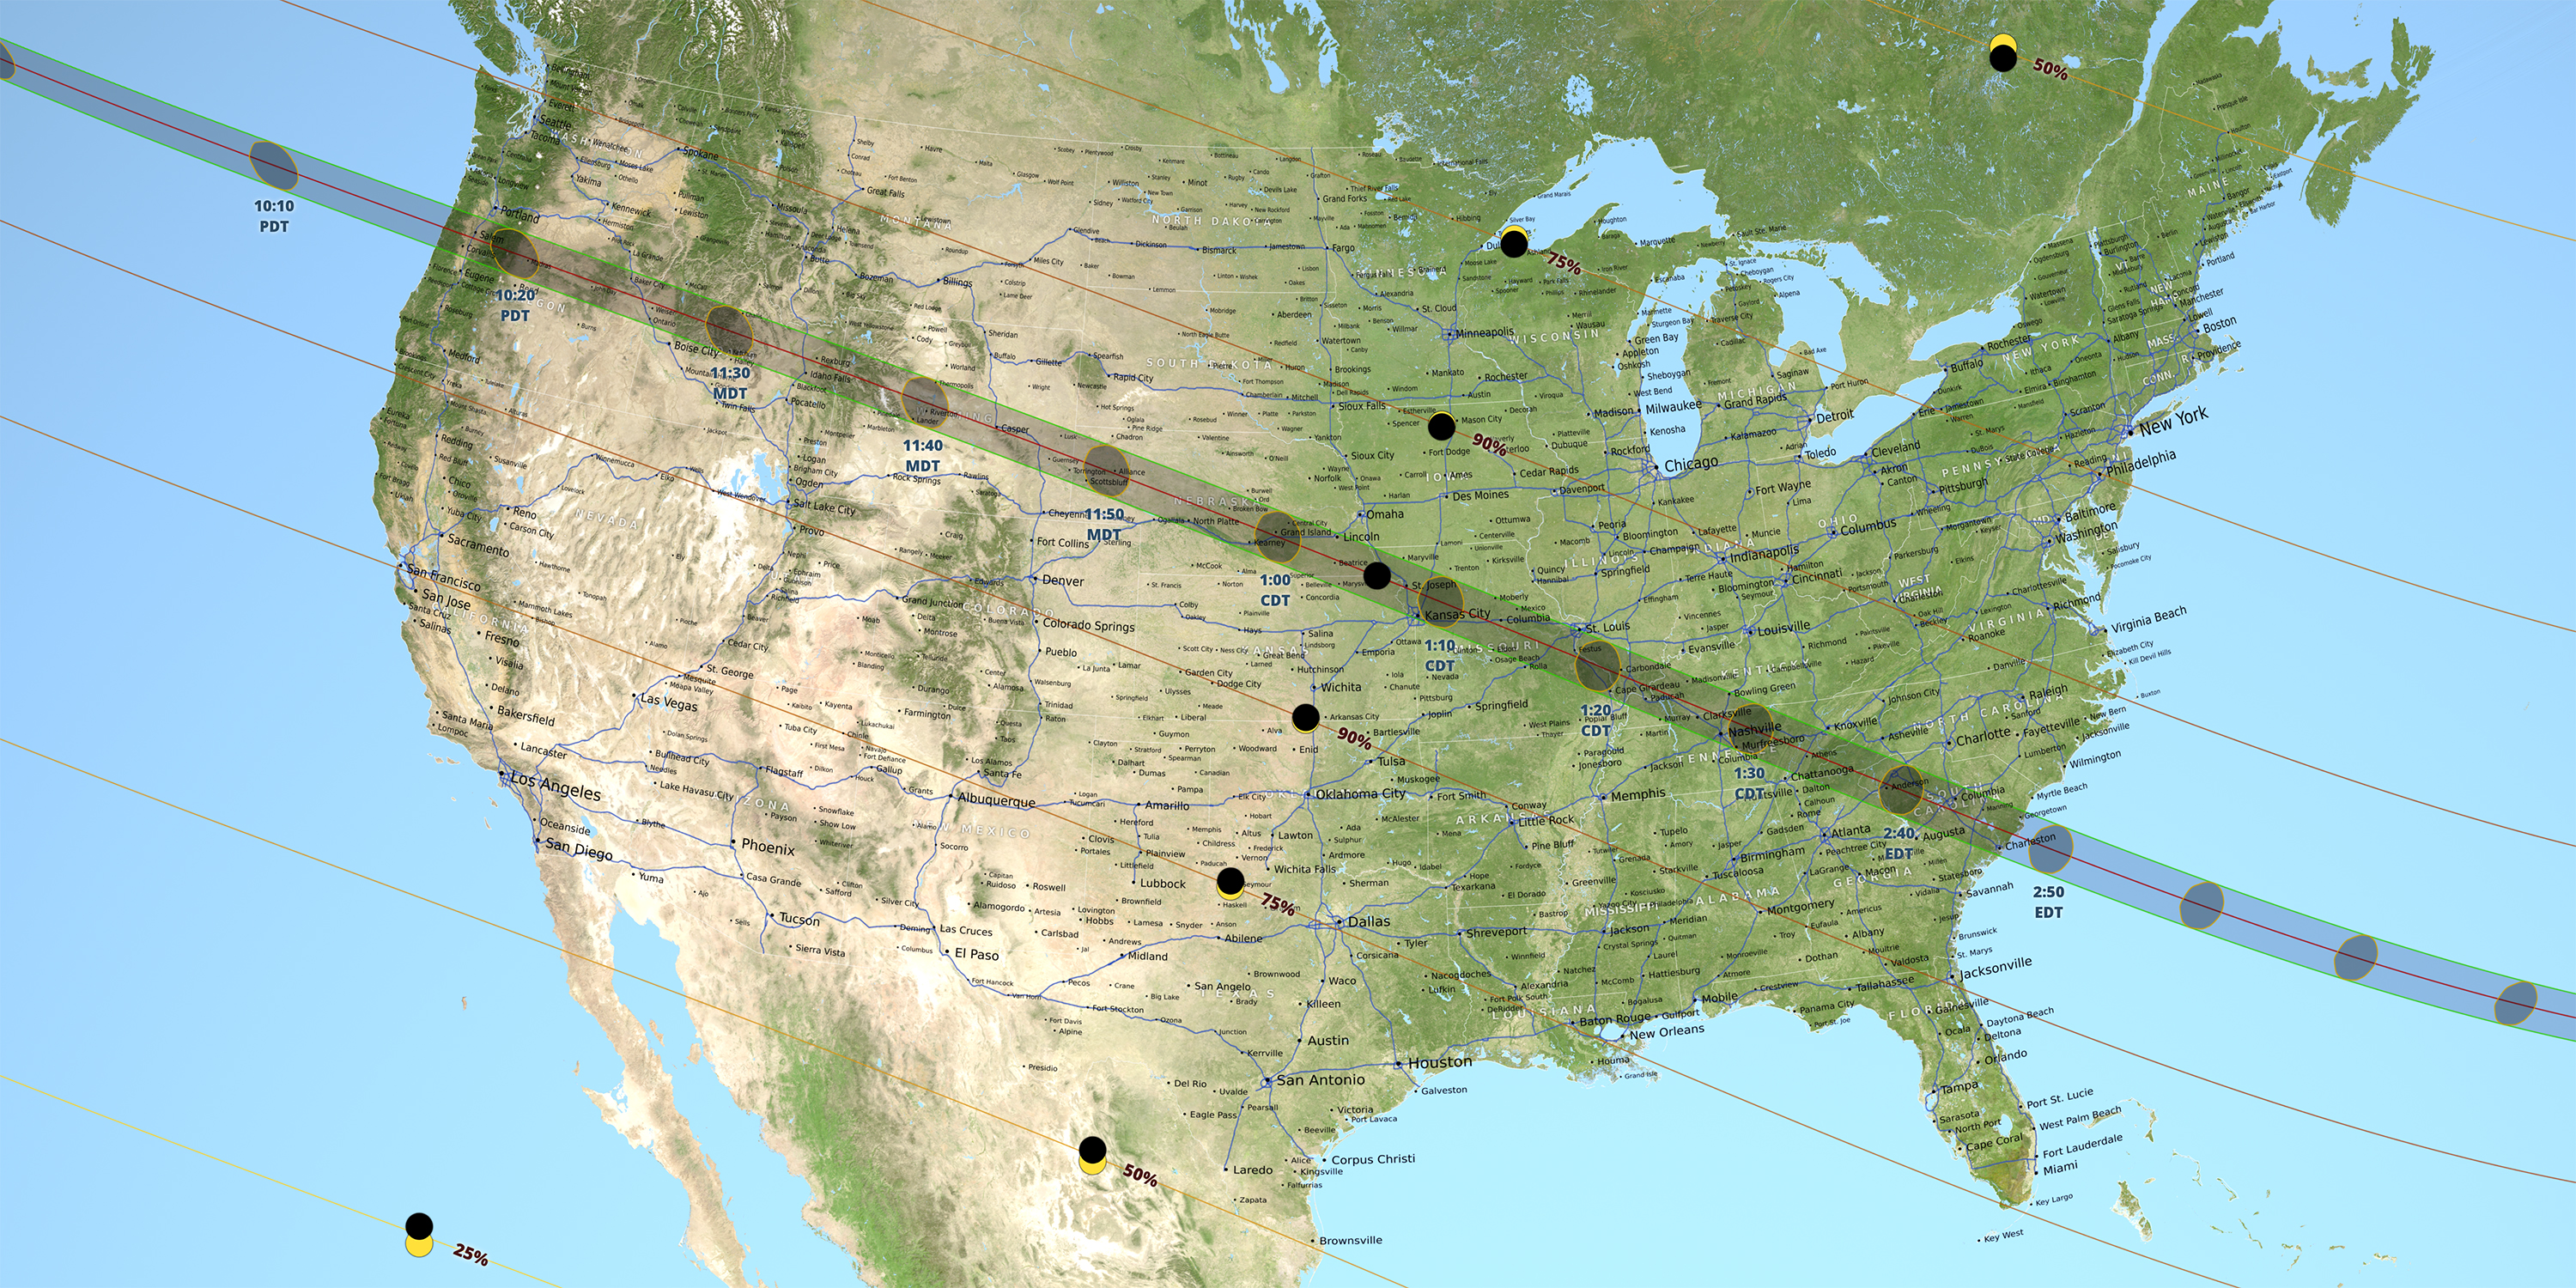 Moon Data Provides More Accurate Eclipse Path NASA - Maps of the us